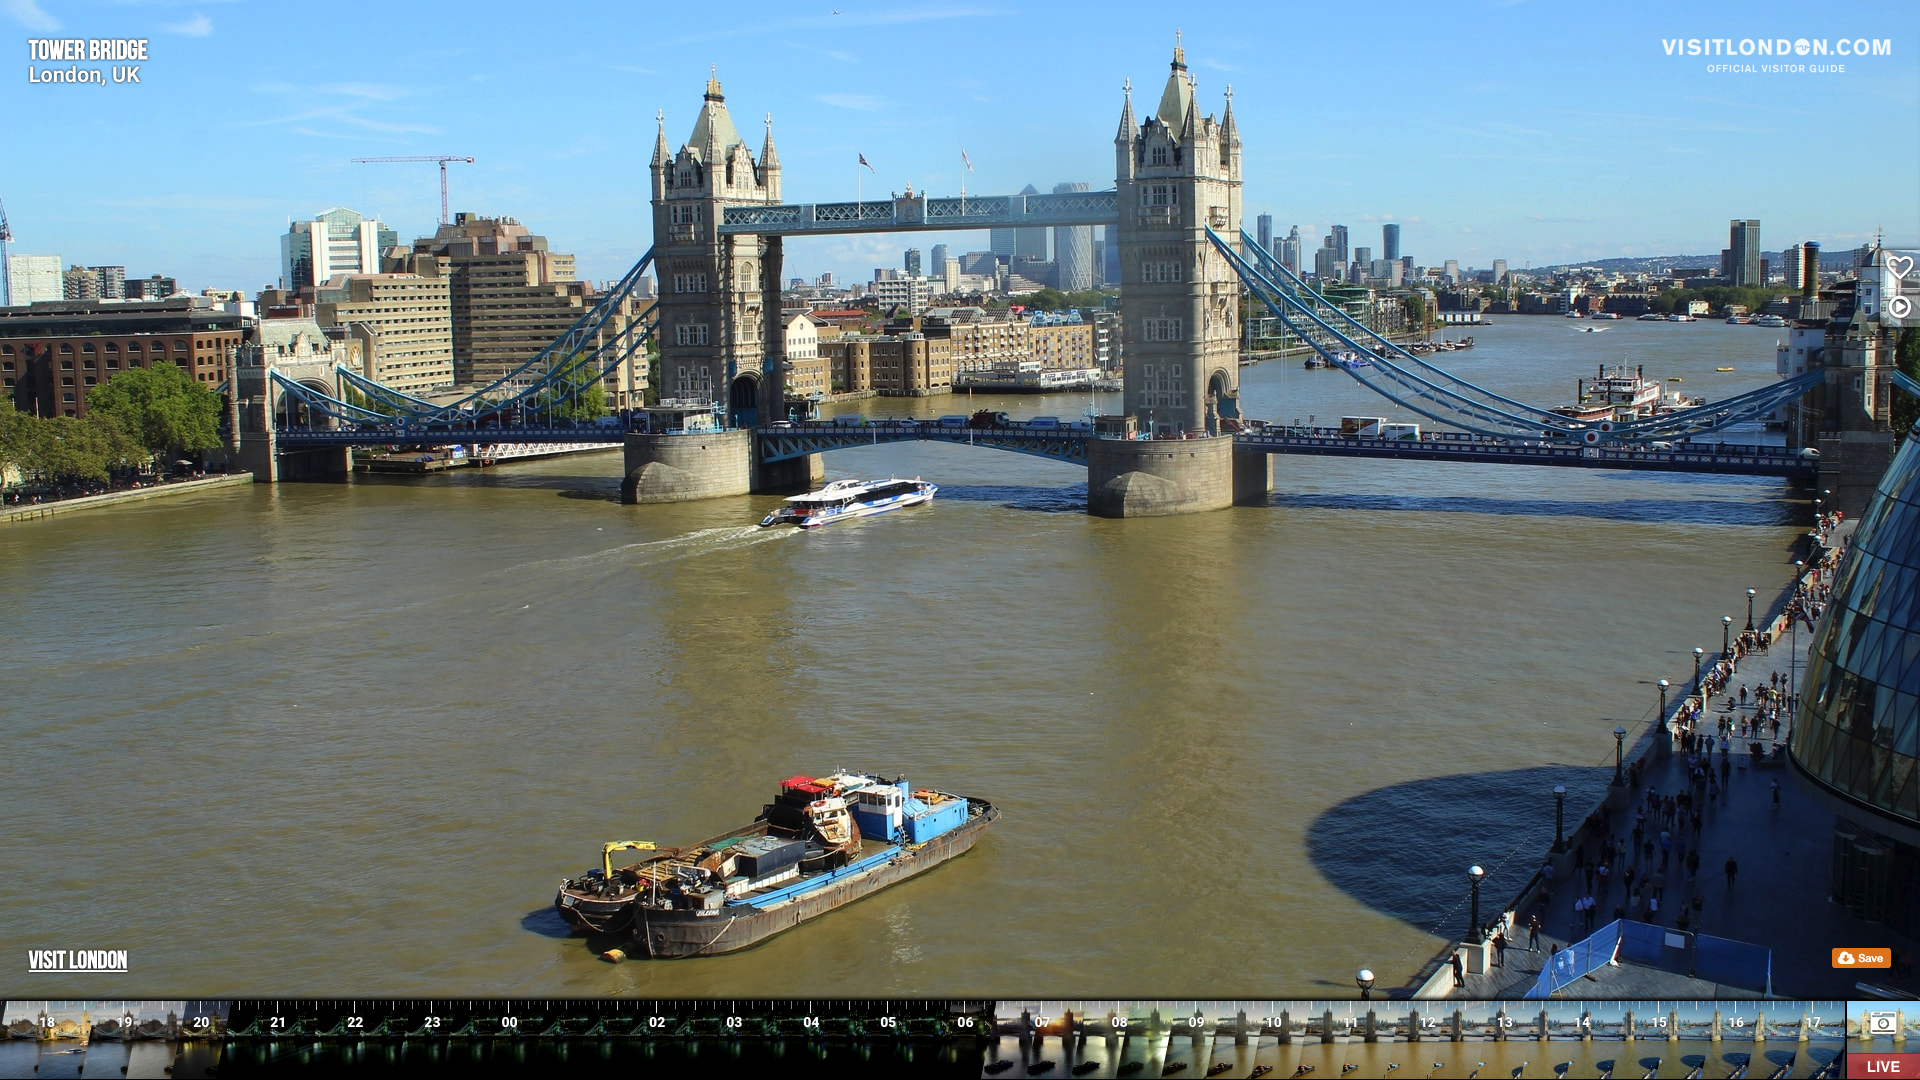 VisitLondon.com Webcam - Looking over Tower Bridge, London, UK